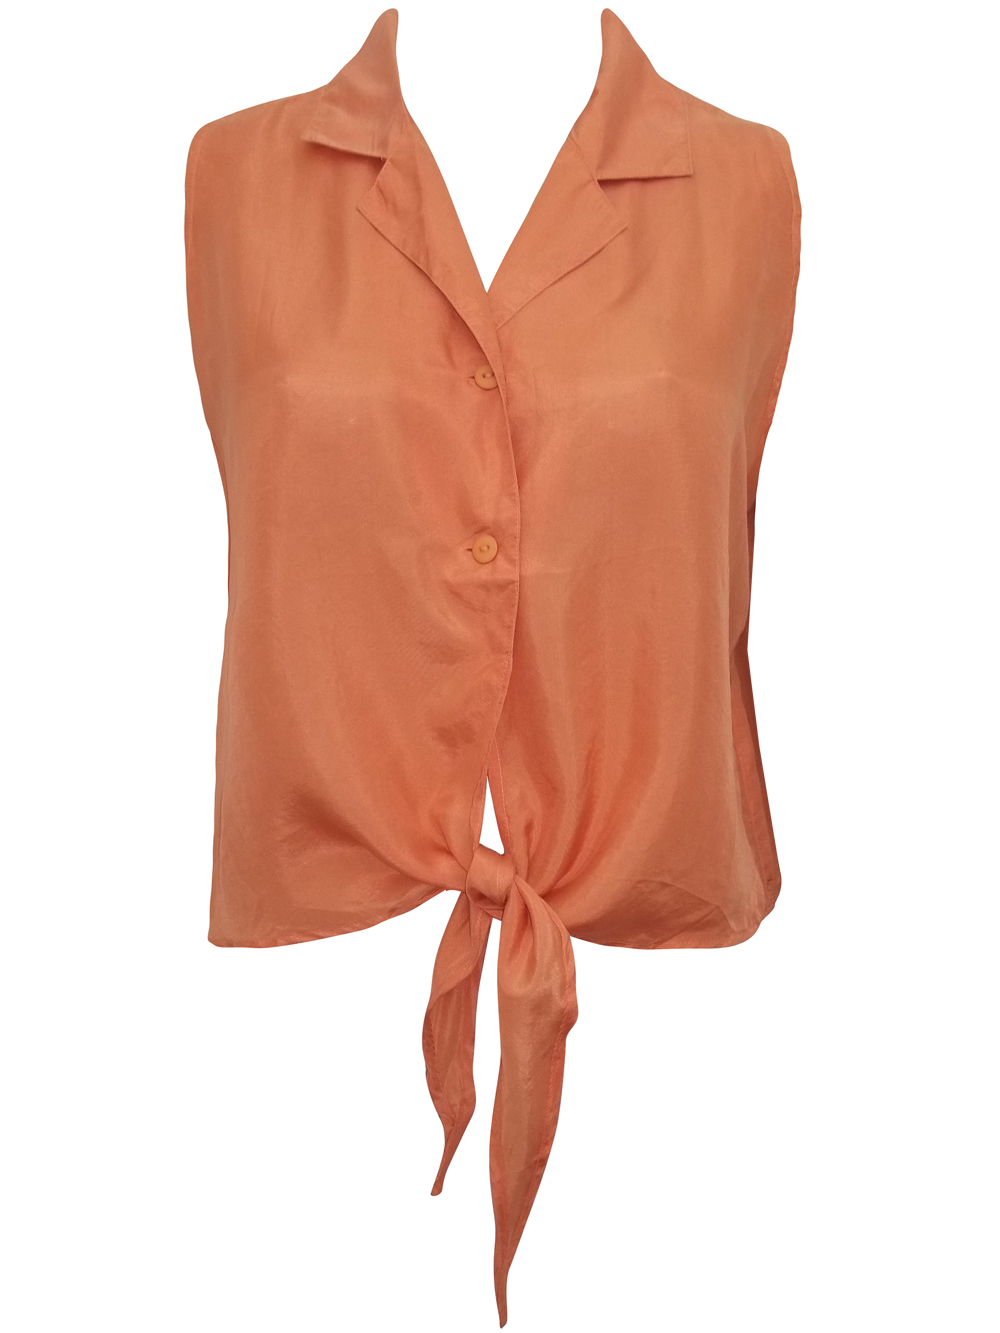 Cocoon SIENNA Pure Silk Sleeveless Tie Front Cropped Shirt - UK Size 12 to 16 (Small to Large)